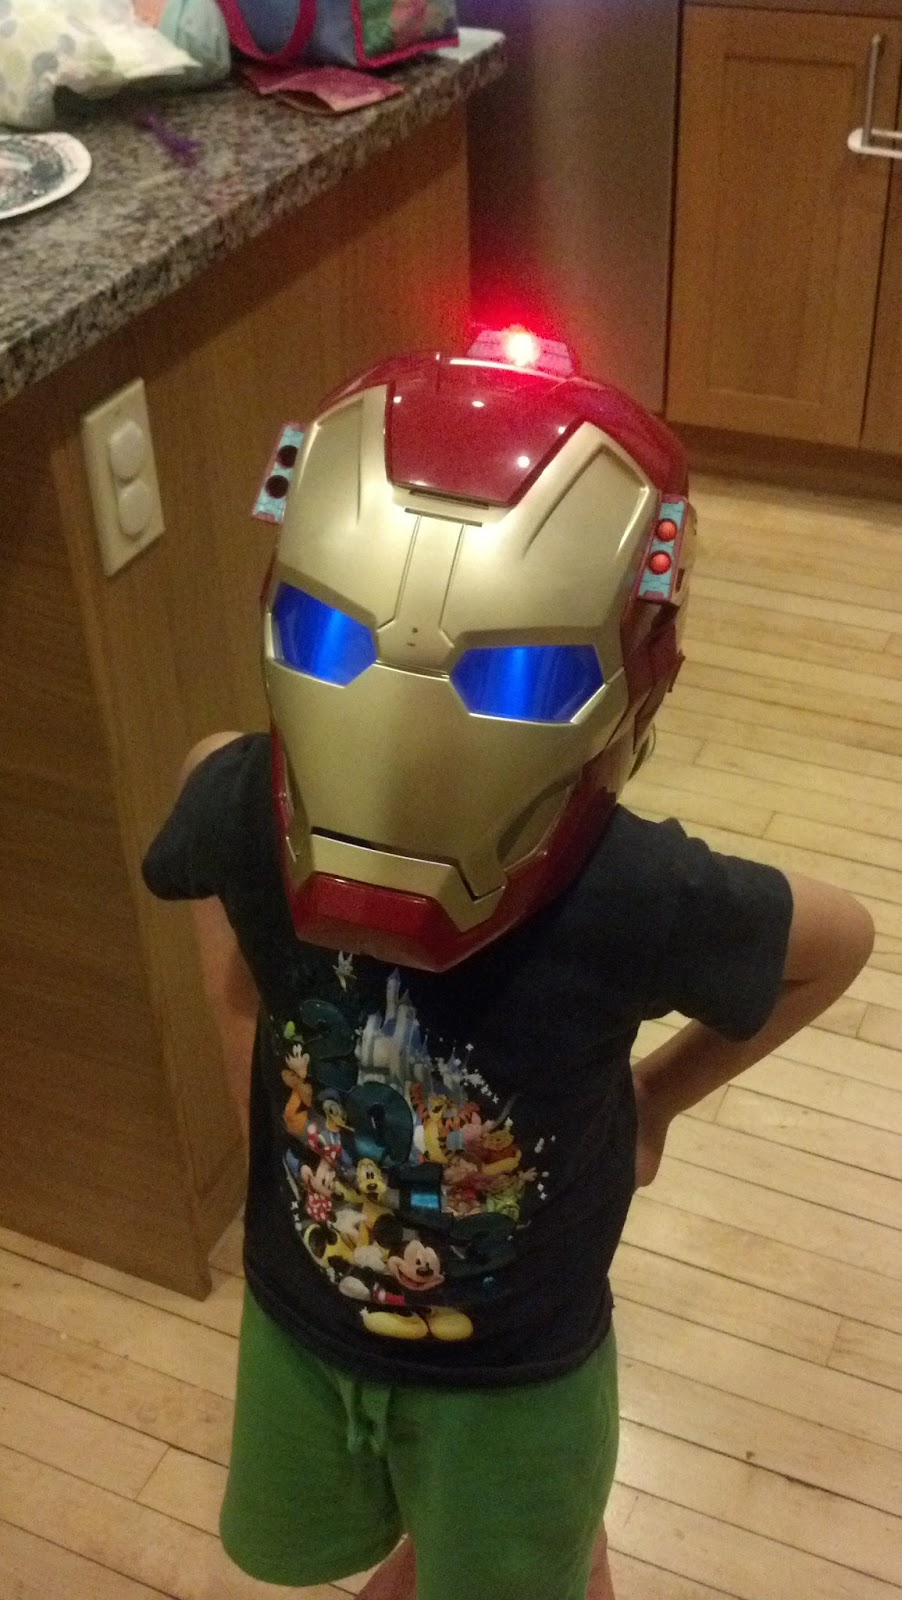 Dad On the Run: Hasbro's Iron Man 3 toys... not just for boys.